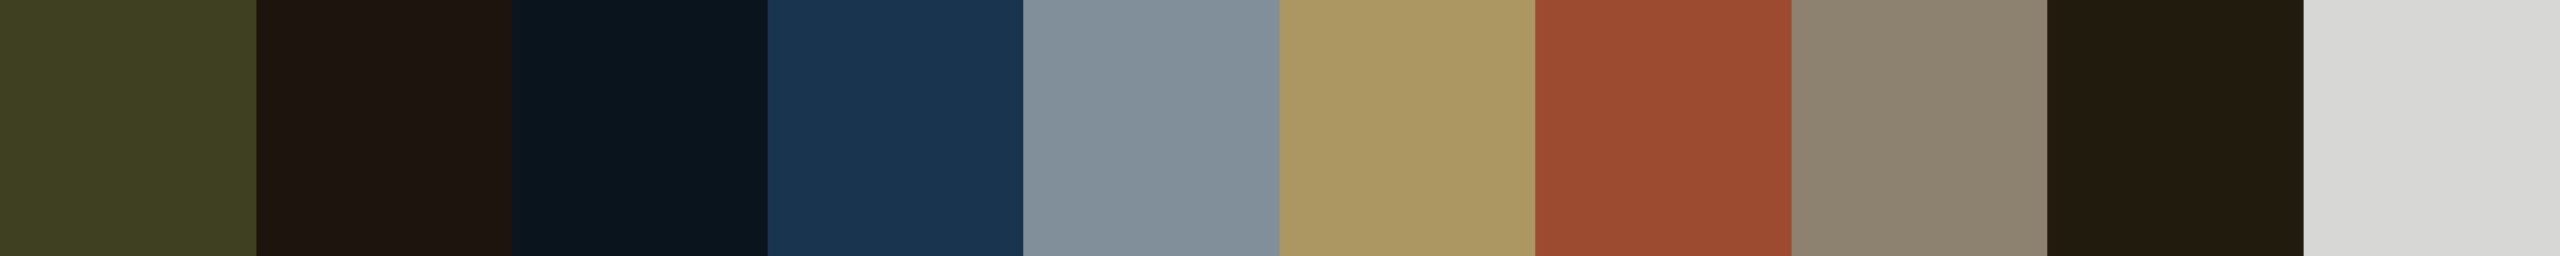 166 Yxalinia Color Palette